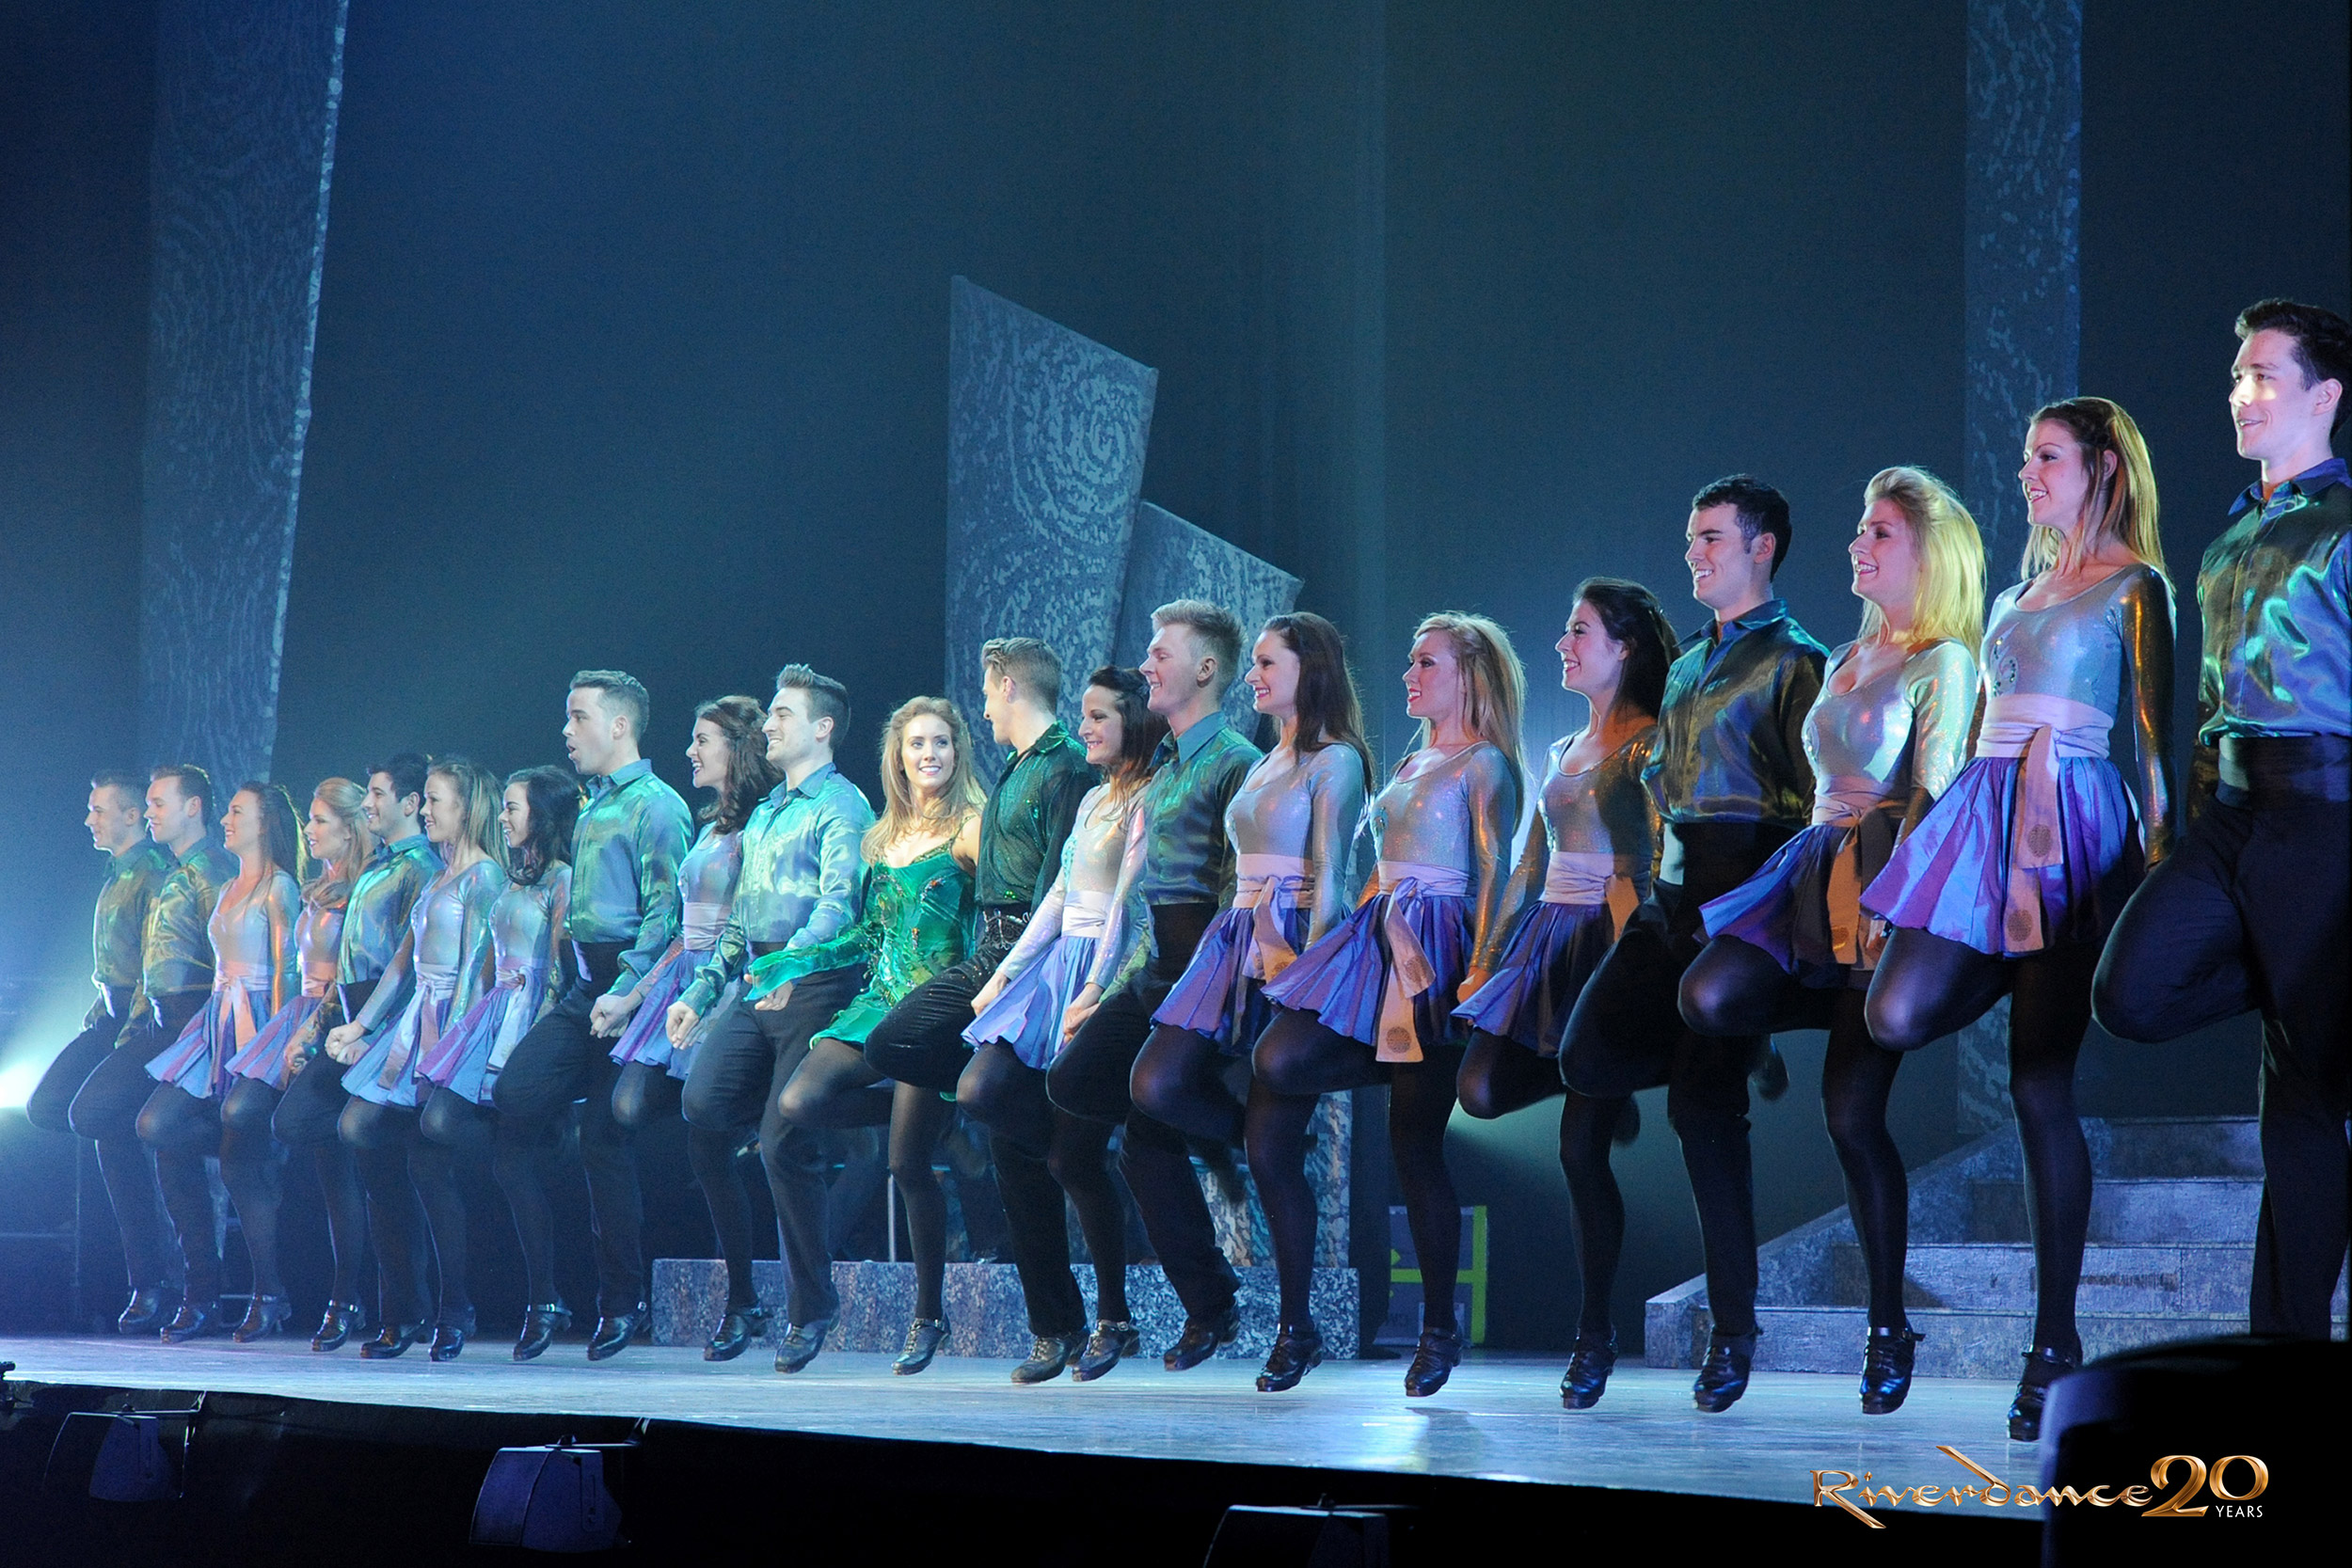 Here's the promo code to the Calgary performance of Riverdance!